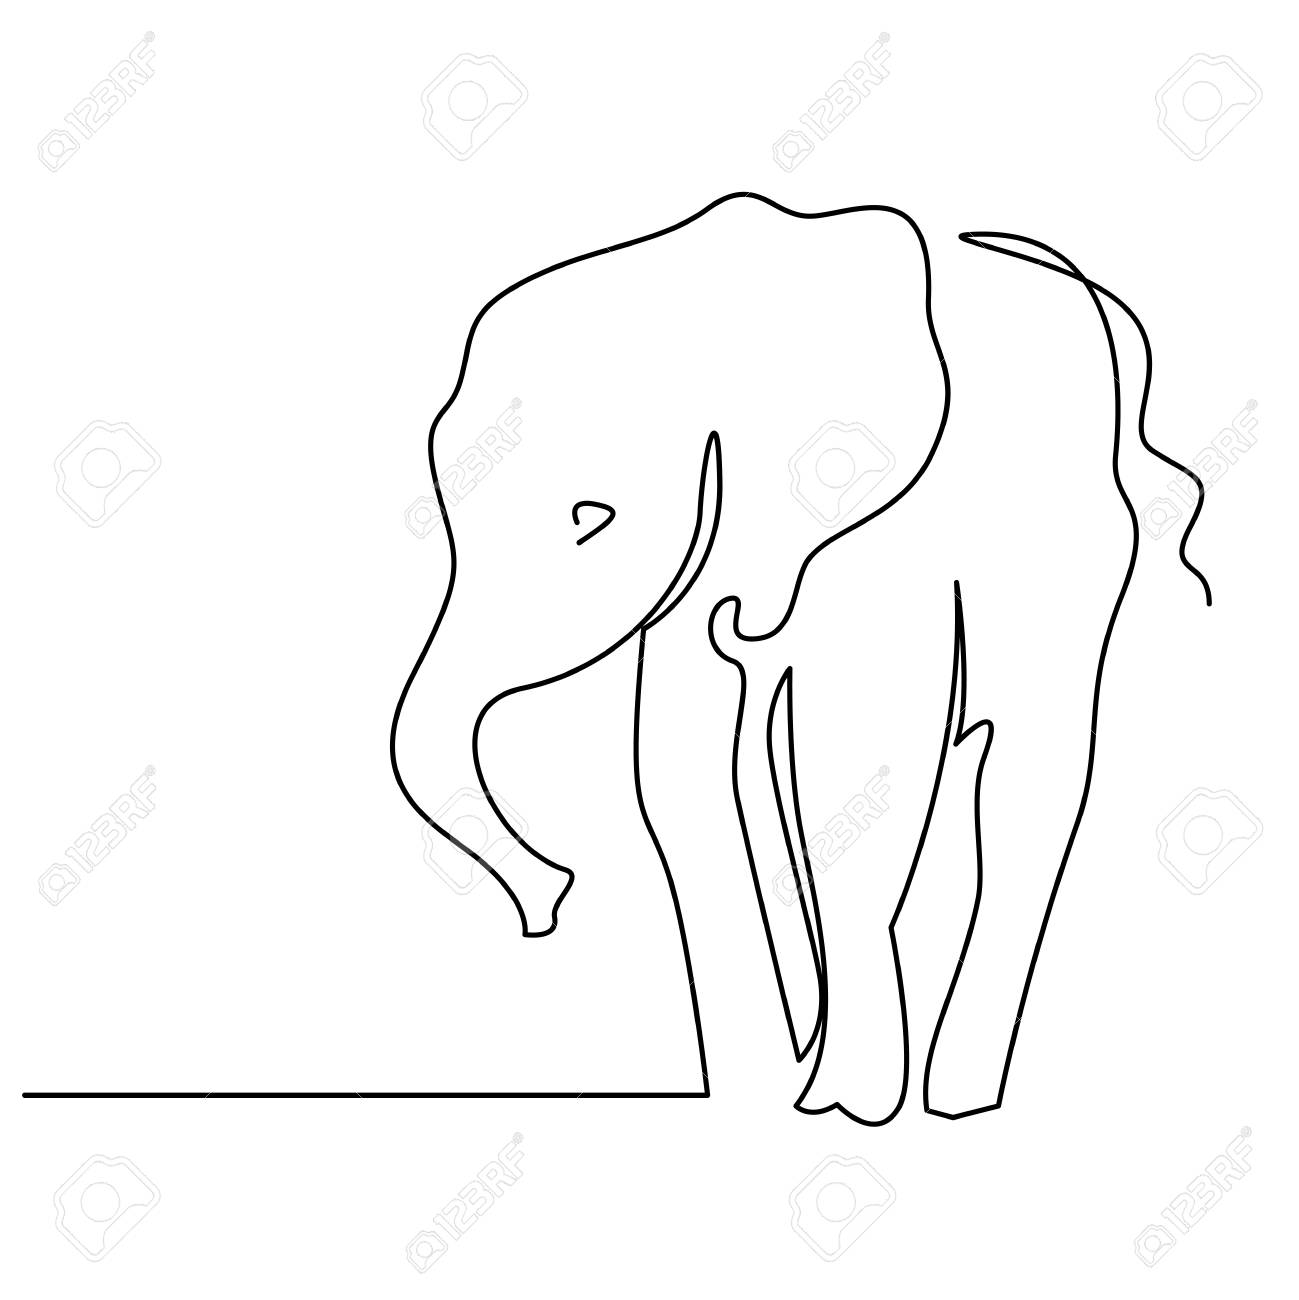 Elephant Continuous One Line Drawings Wild Large Animals Vector Royalty Free Cliparts Vectors And Stock Illustration Image 124610122